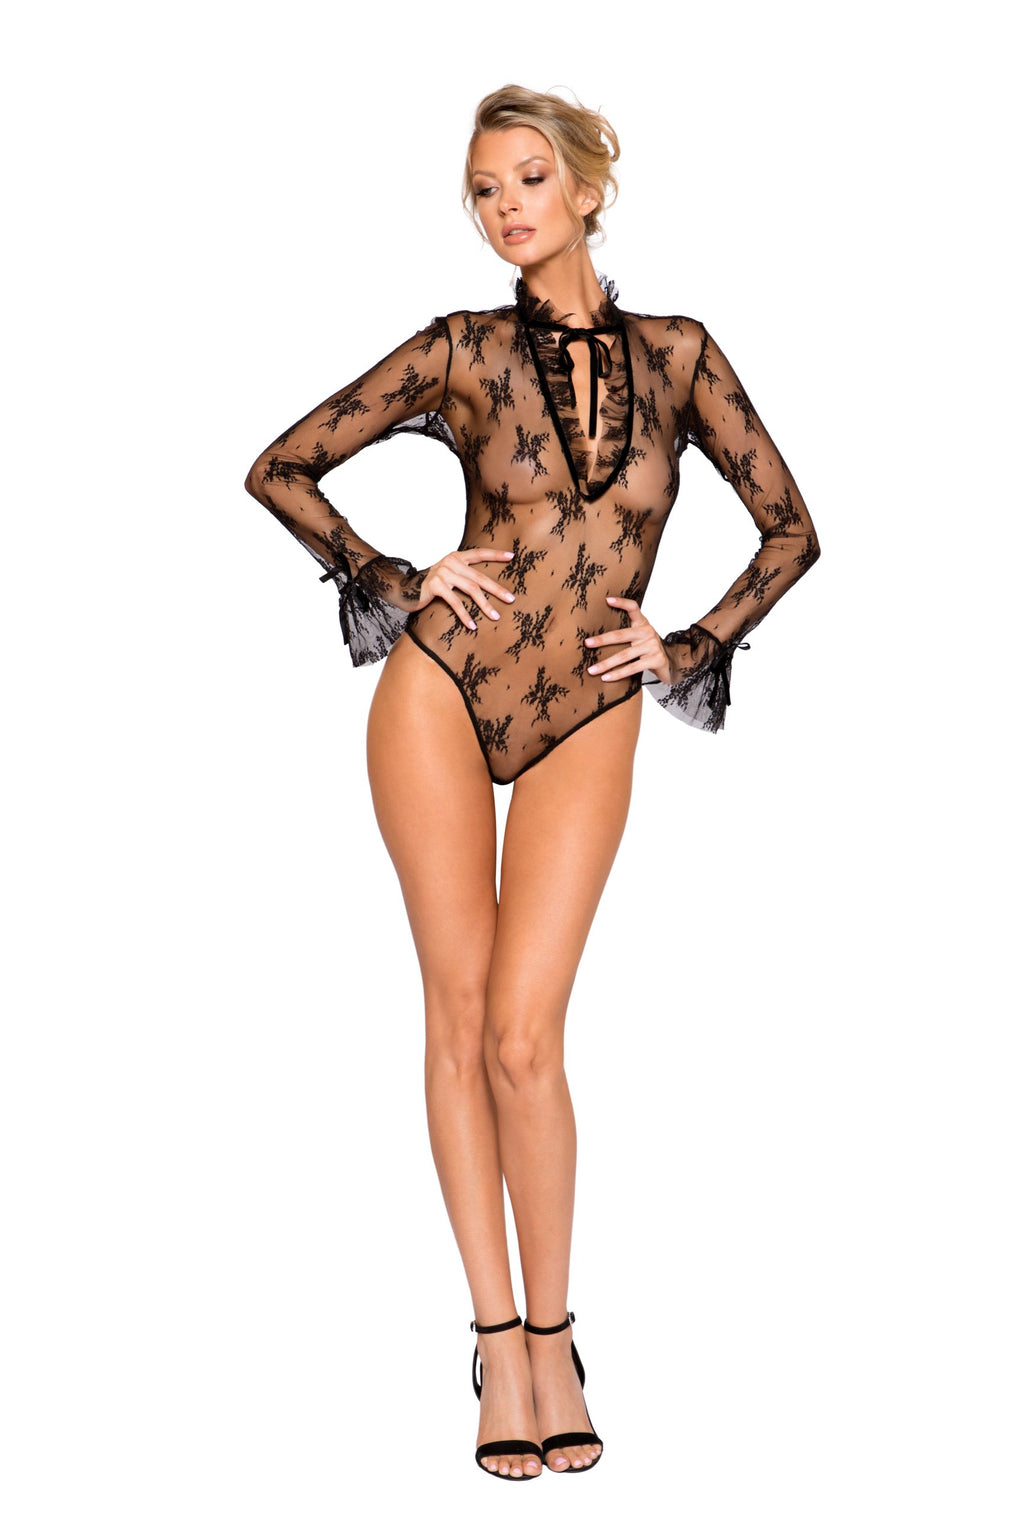 Elegant Long Sleeved Keyhole Teddy with Ruffle Detail & Snap Bottom (Curvy Sizes Available)